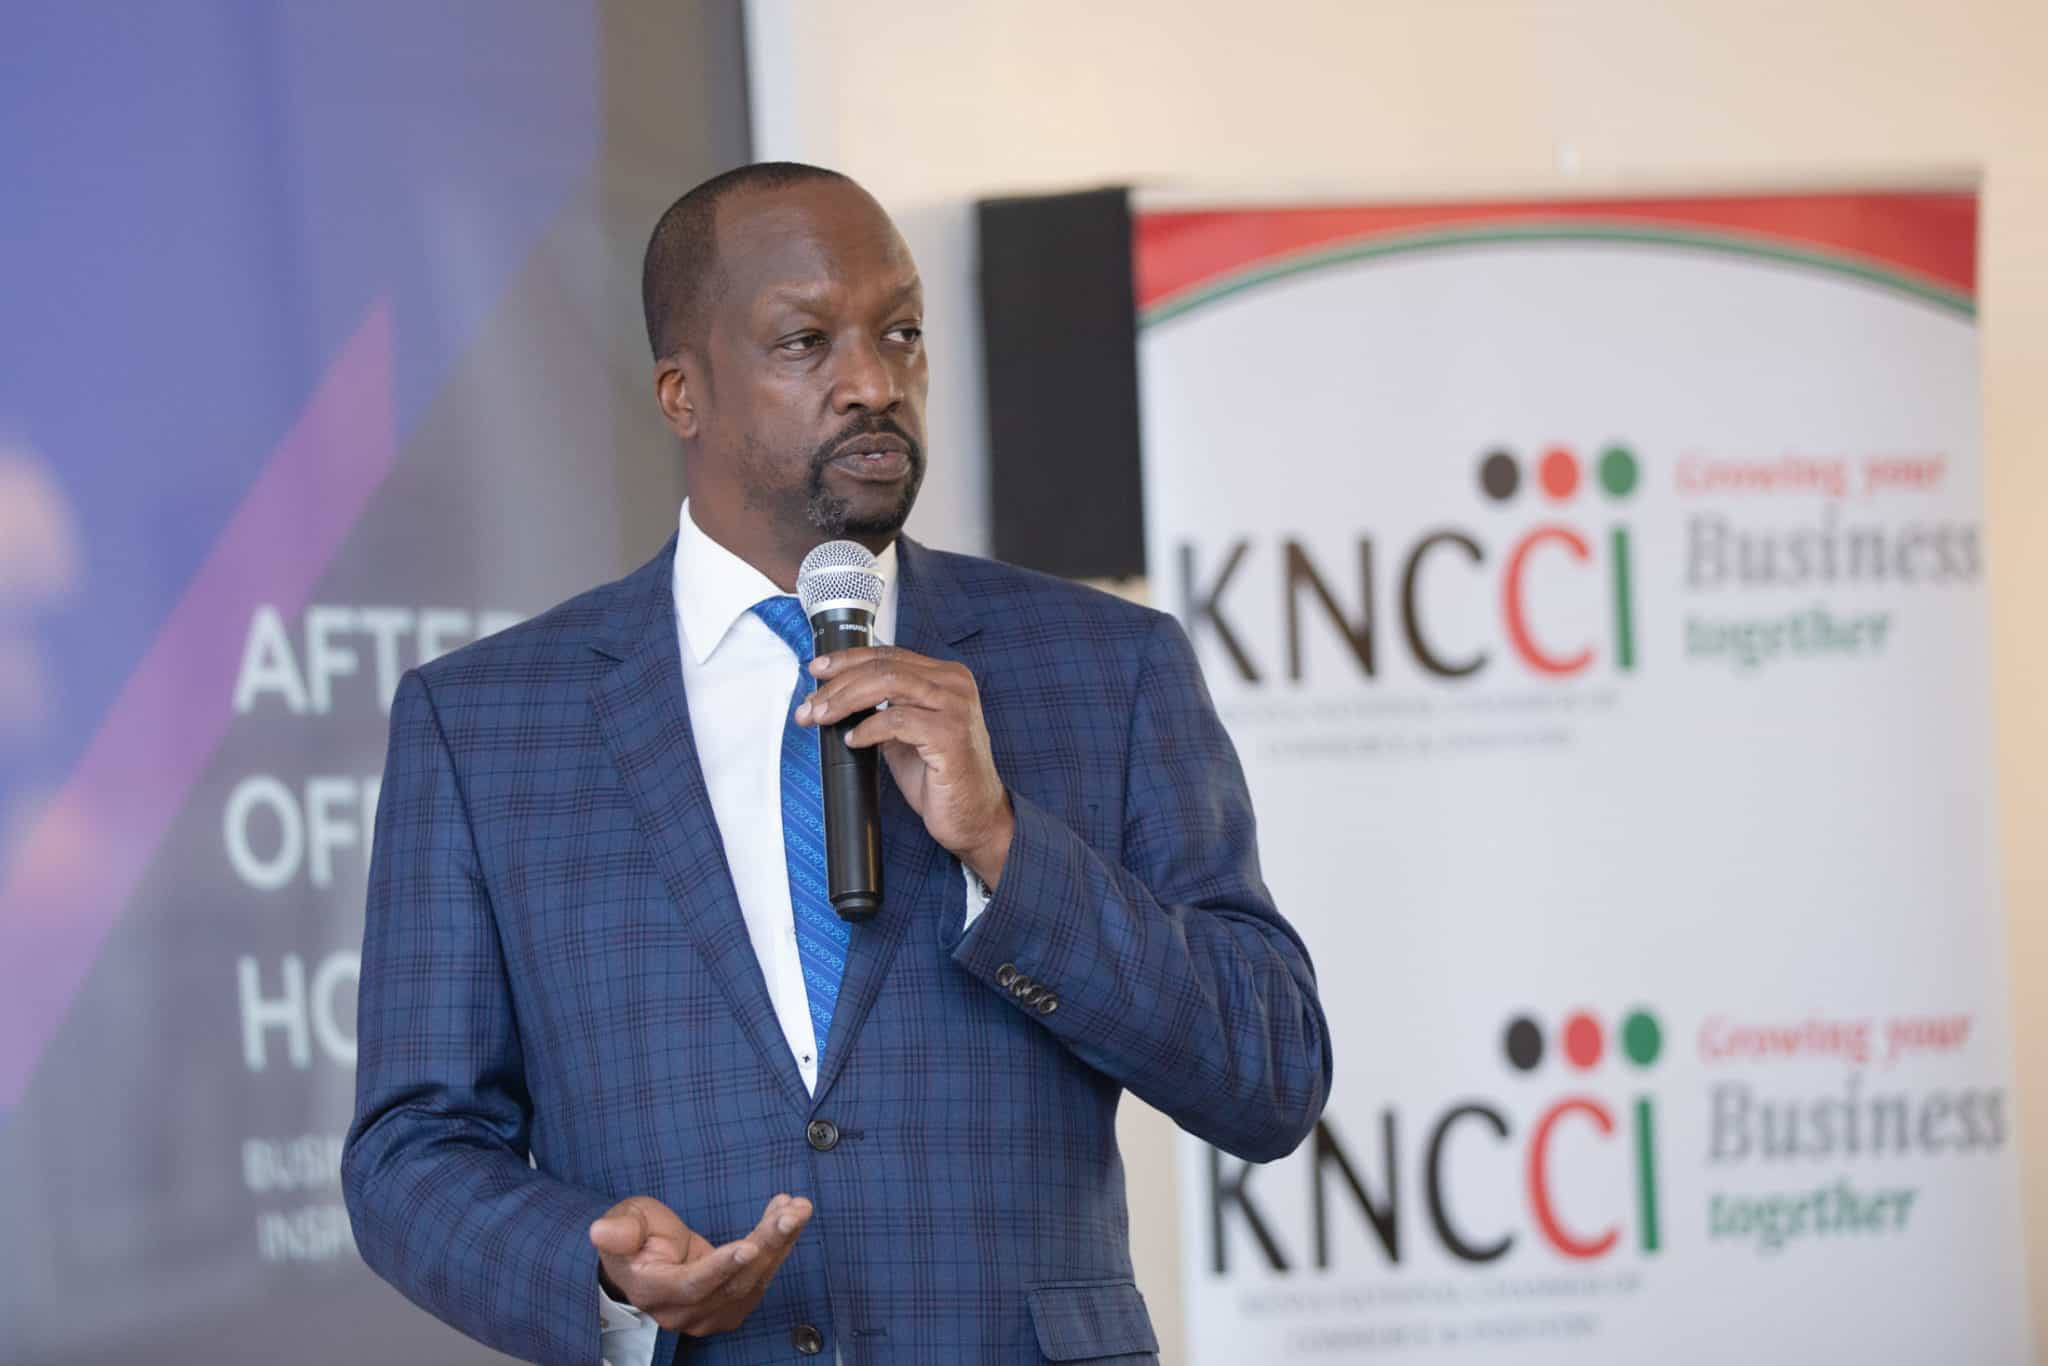 Mr. Kiprono Kittony, National Chairman KNCCI sharing his business lessons learnt form his business journey